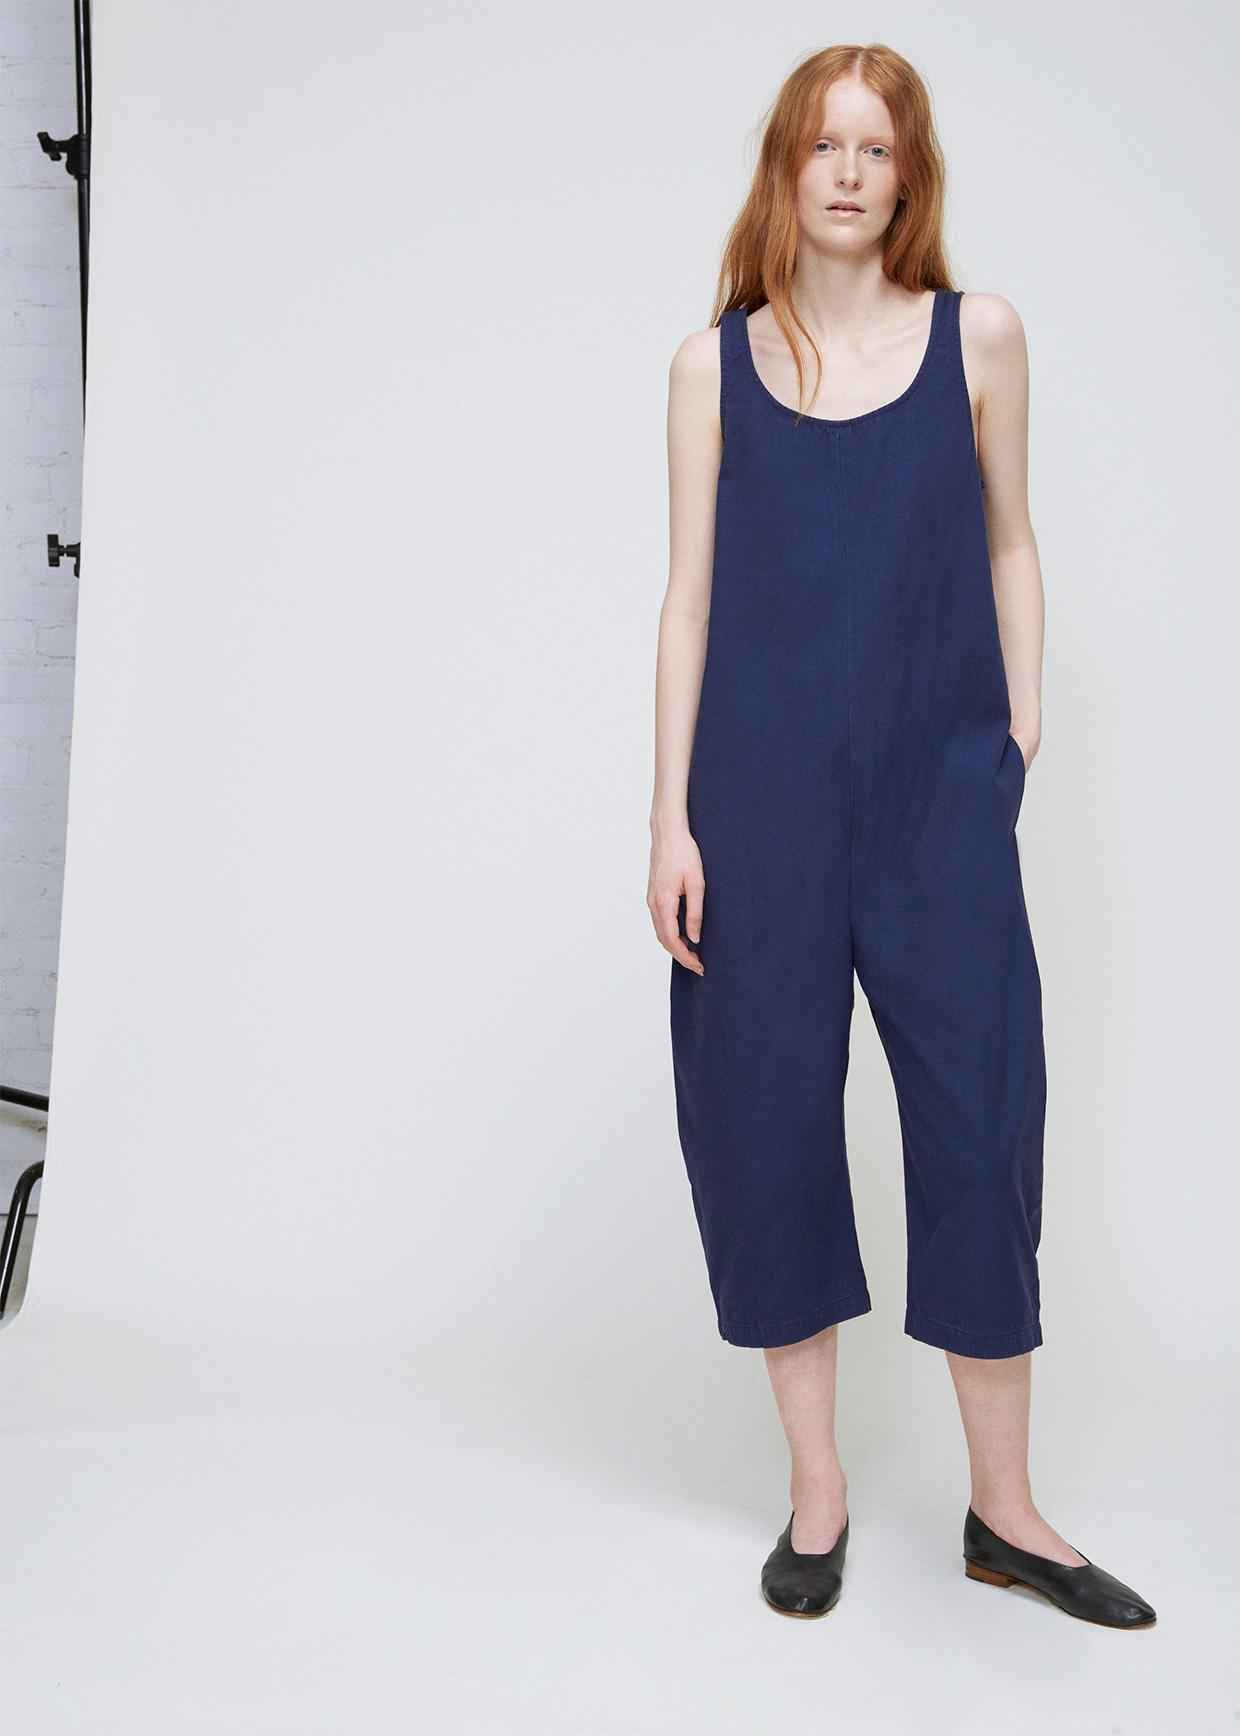 d554534f4907 Lyst - Ilana Kohn Marine Canvas Gary Jumpsuit in Blue